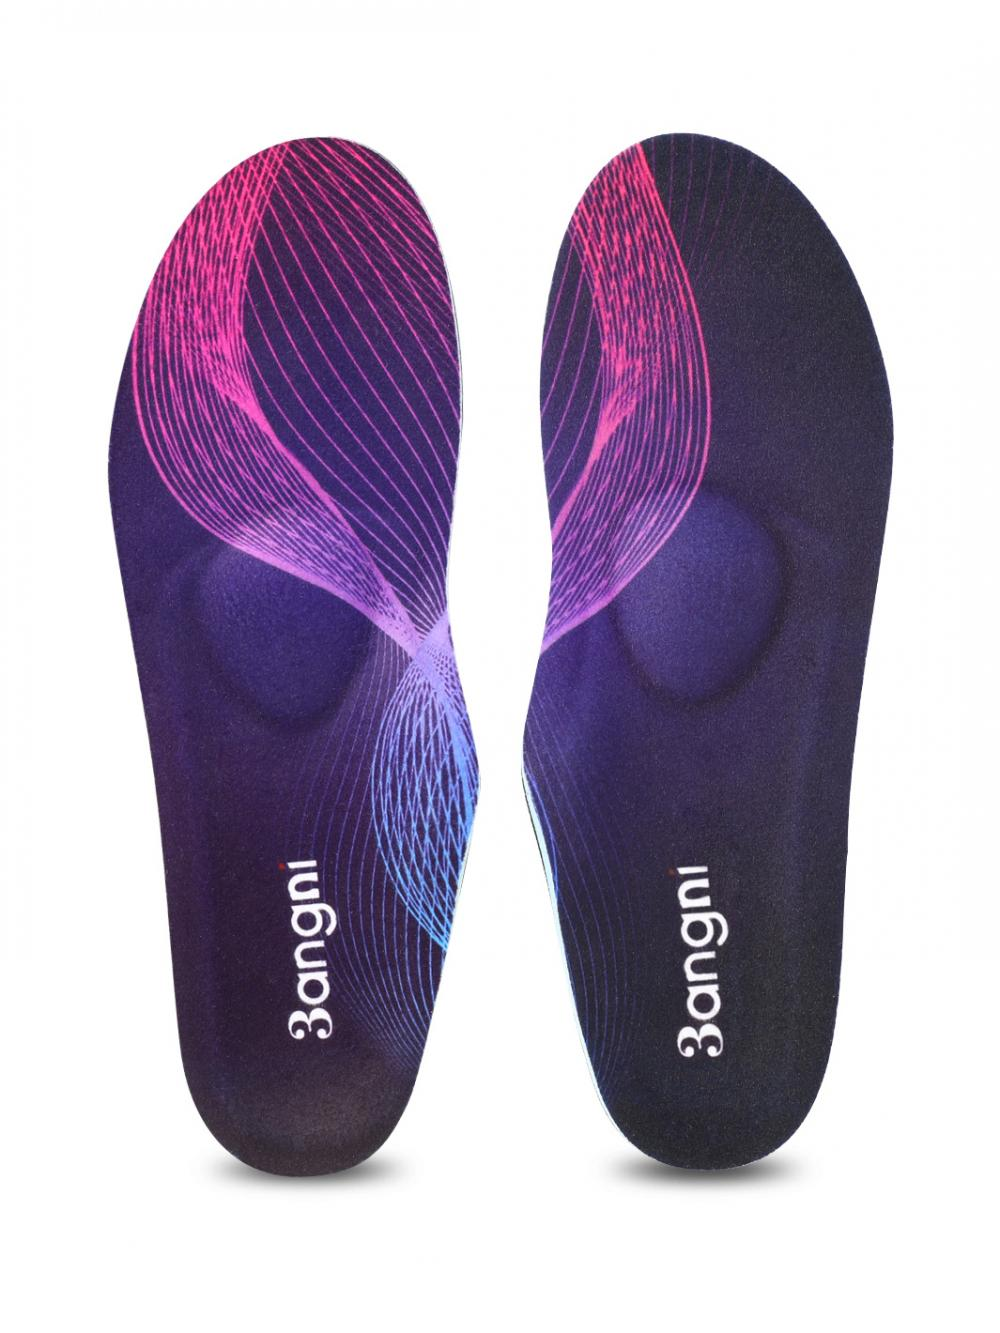 Feet Heat Moldable Orthotic Insoles 1